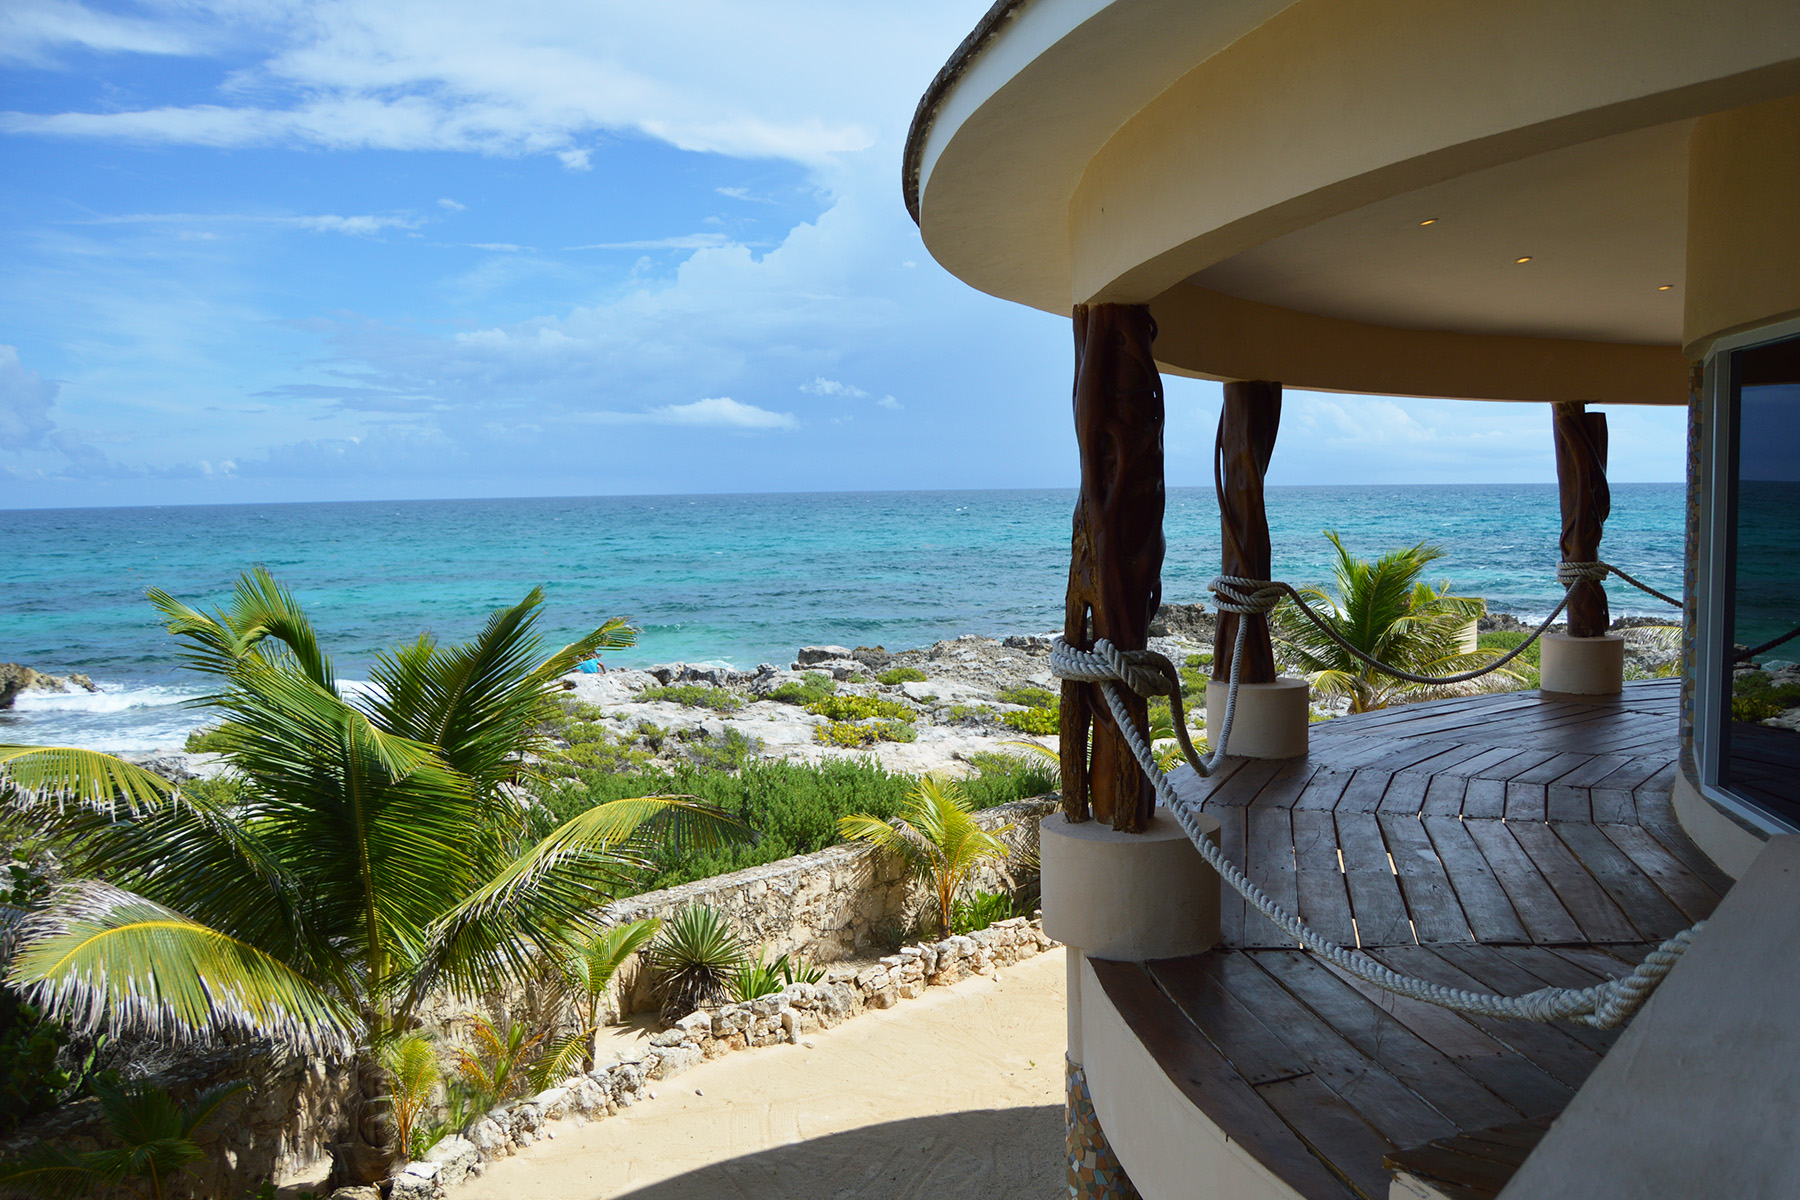 Single Family Home for Sale at SPECTACULAR RESIDENCE IN NORTH BEACH ISLA MUJERES Spectacular Residence in North Beach Punta Norte Isla Mujeres, 77409 Mexico